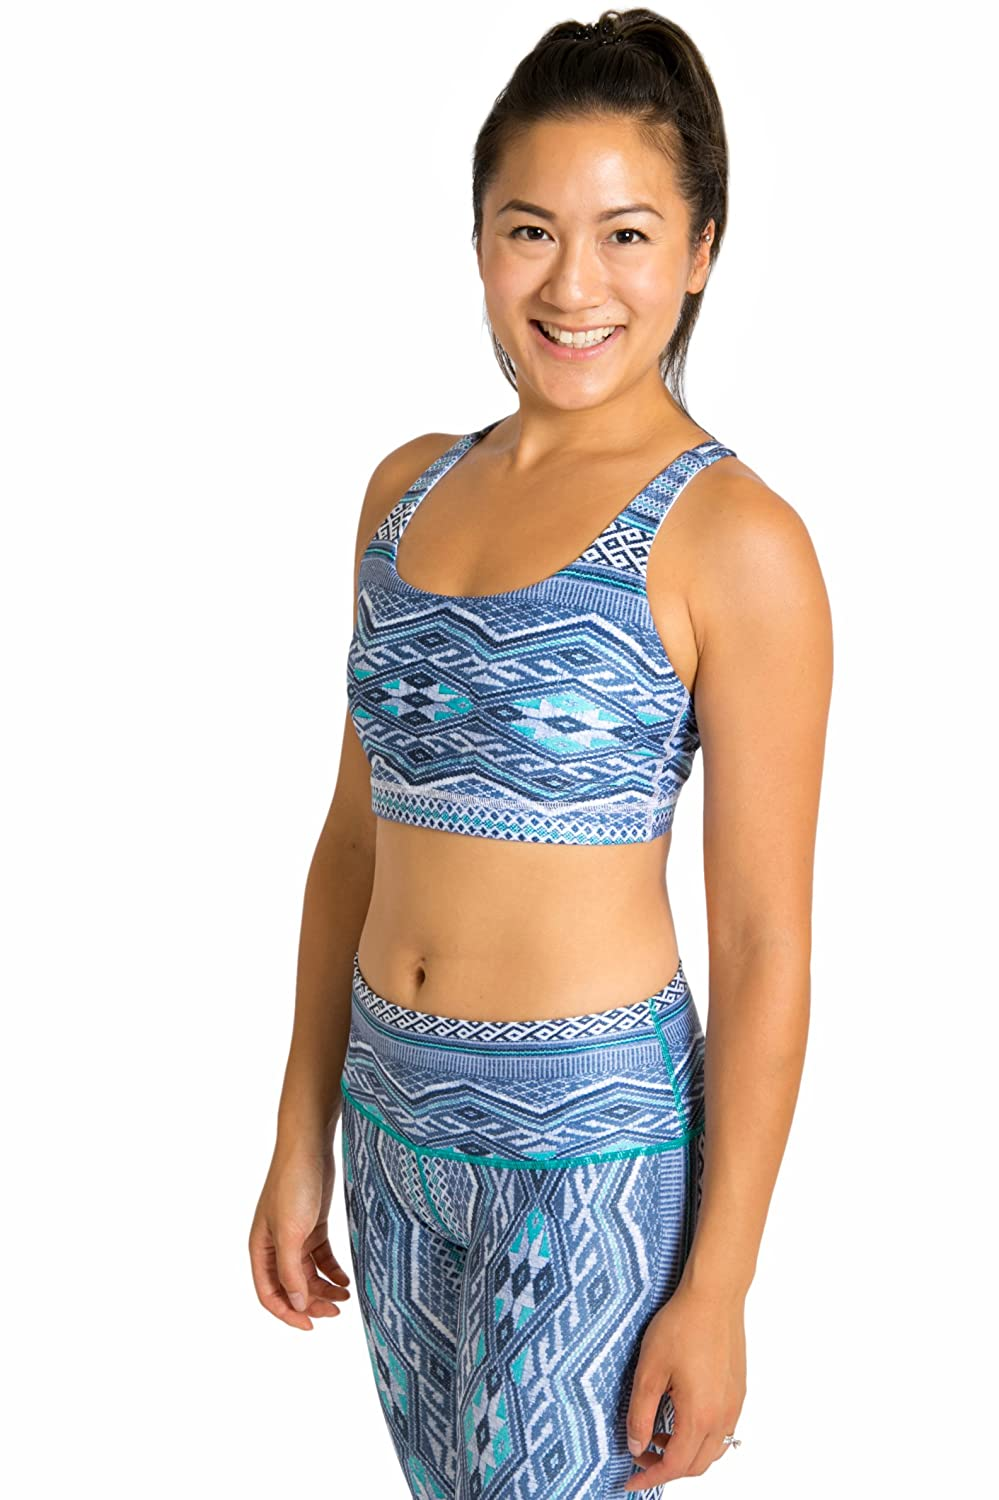 Inner Fire Sports Bra – Comfortable Support Eco-Fabric - Yoga, Hiking, Running